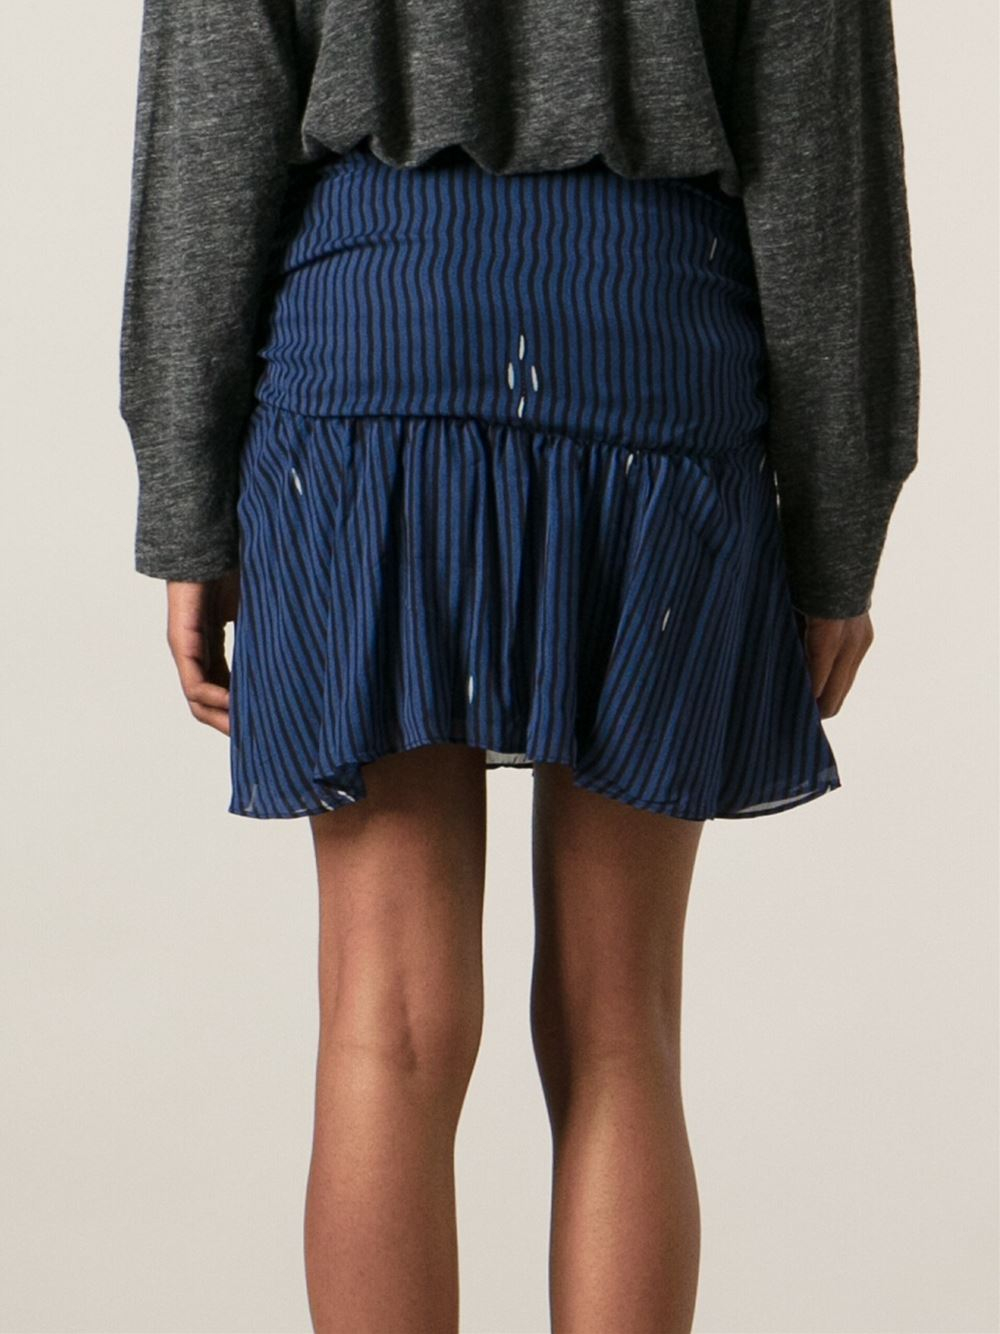 Étoile isabel marant Ruched Skirt in Blue